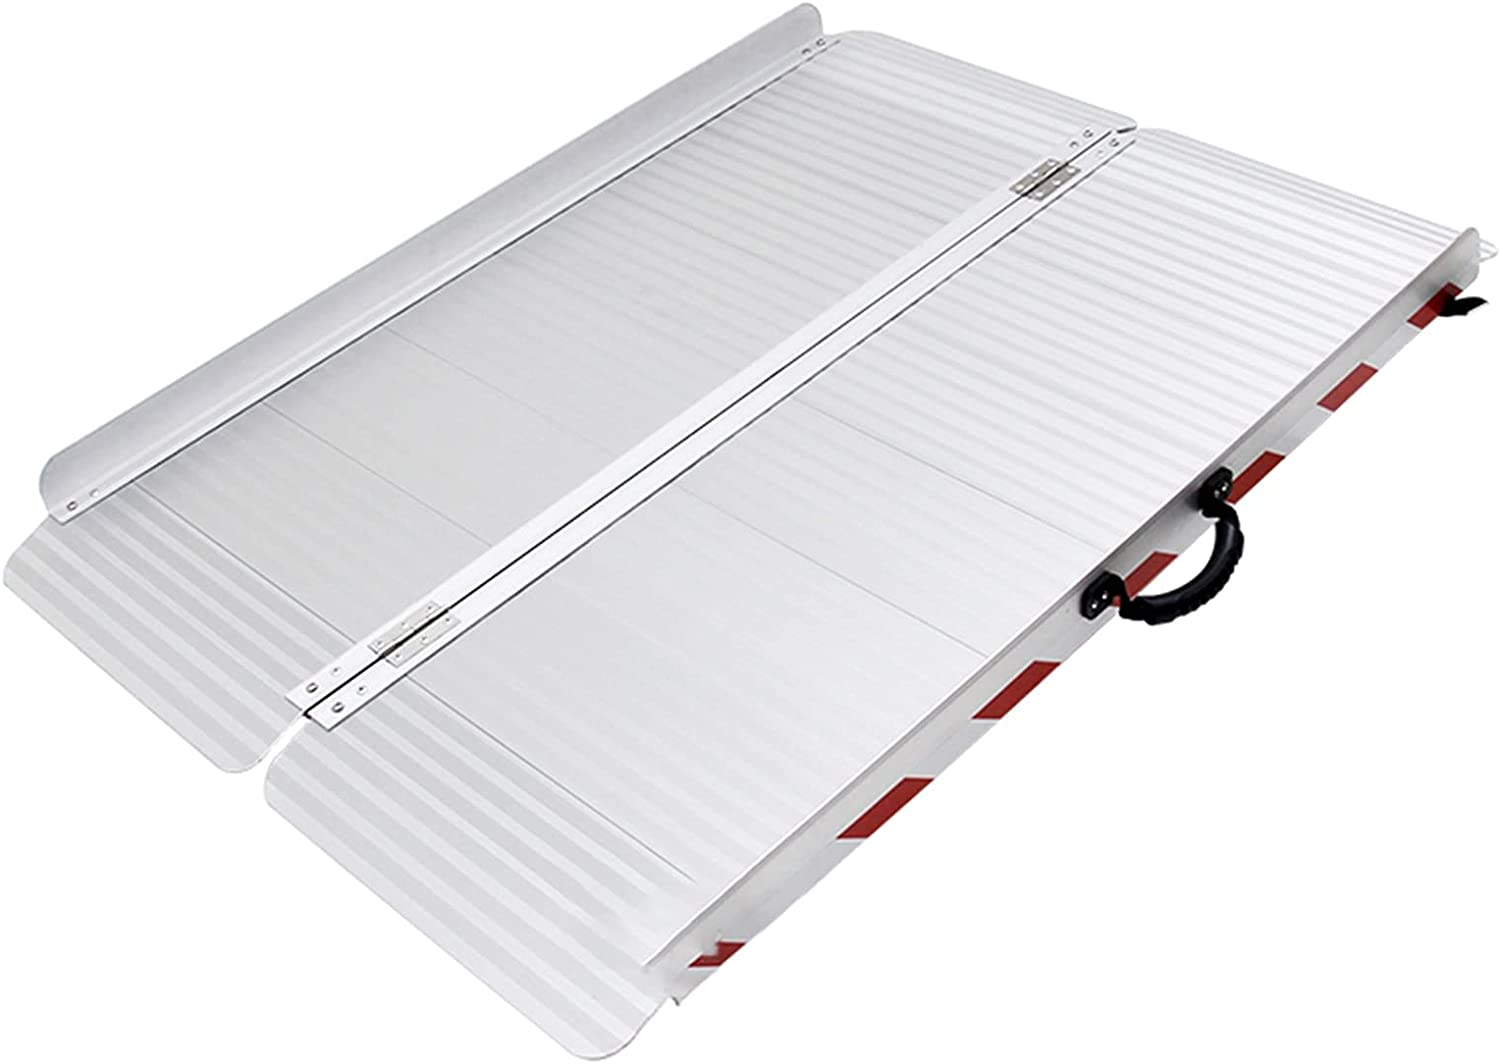 LJQQ Ramps Textured Limited Special Price Aluminum 2021 new Folding 85cm Wheelchair Wide Ramp